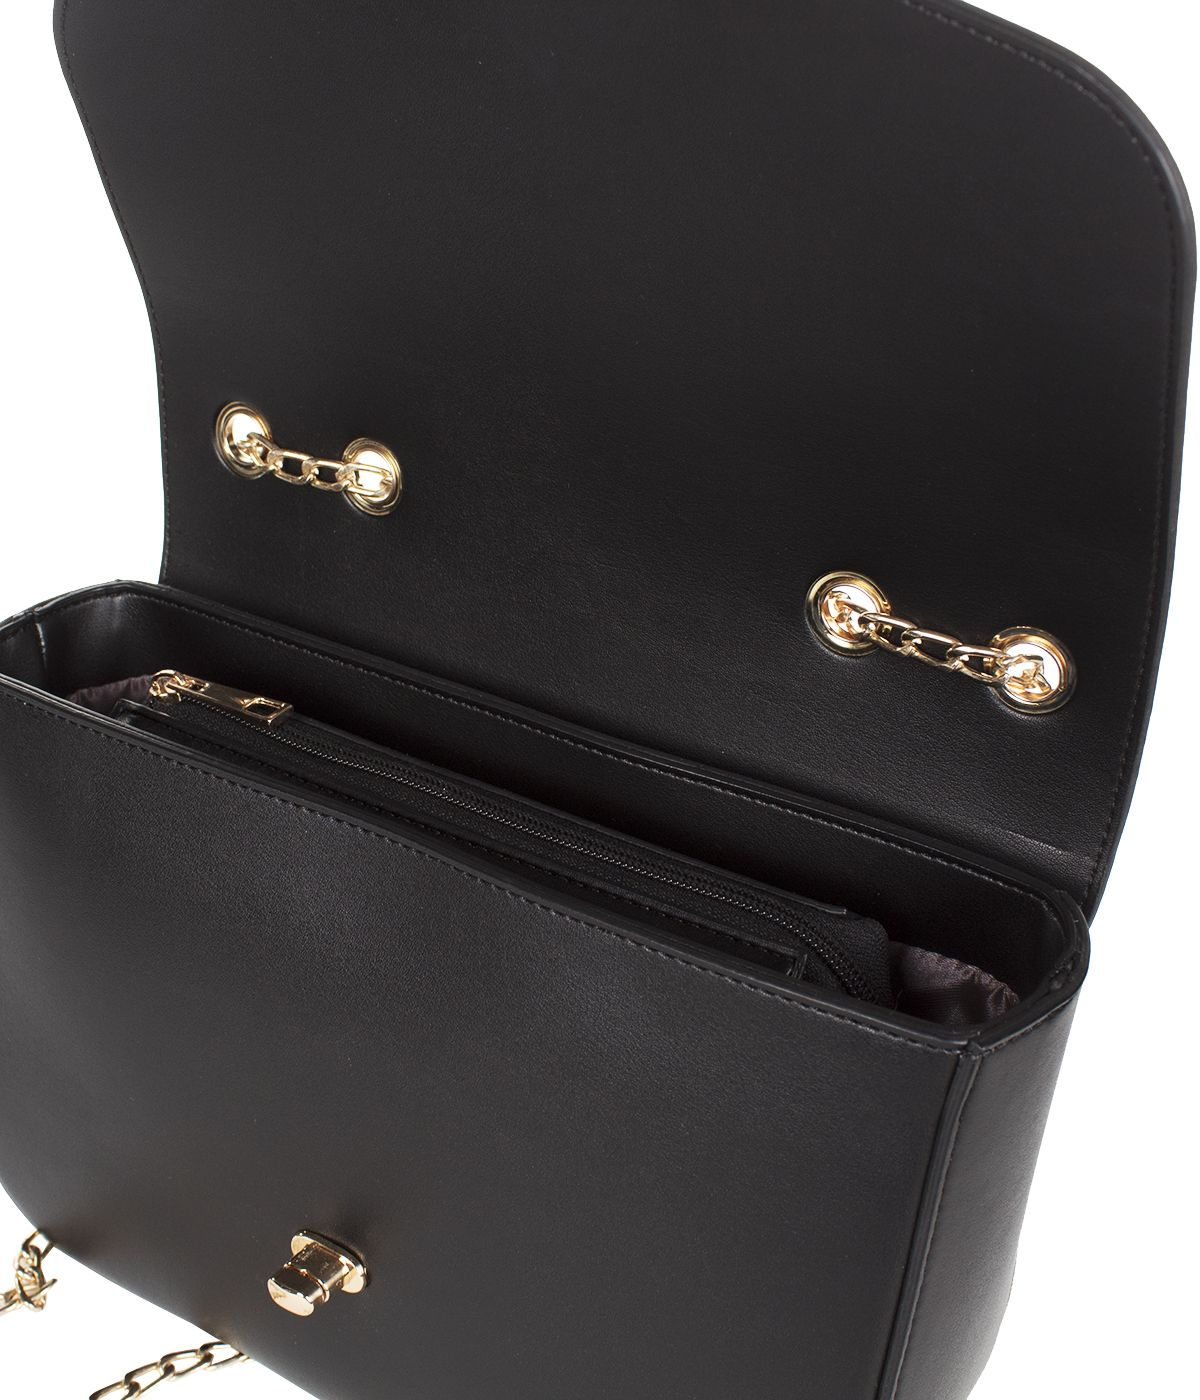 BLACK LEATHER BAG WITH GOLDEN CHAIN AND CLOSURE 4